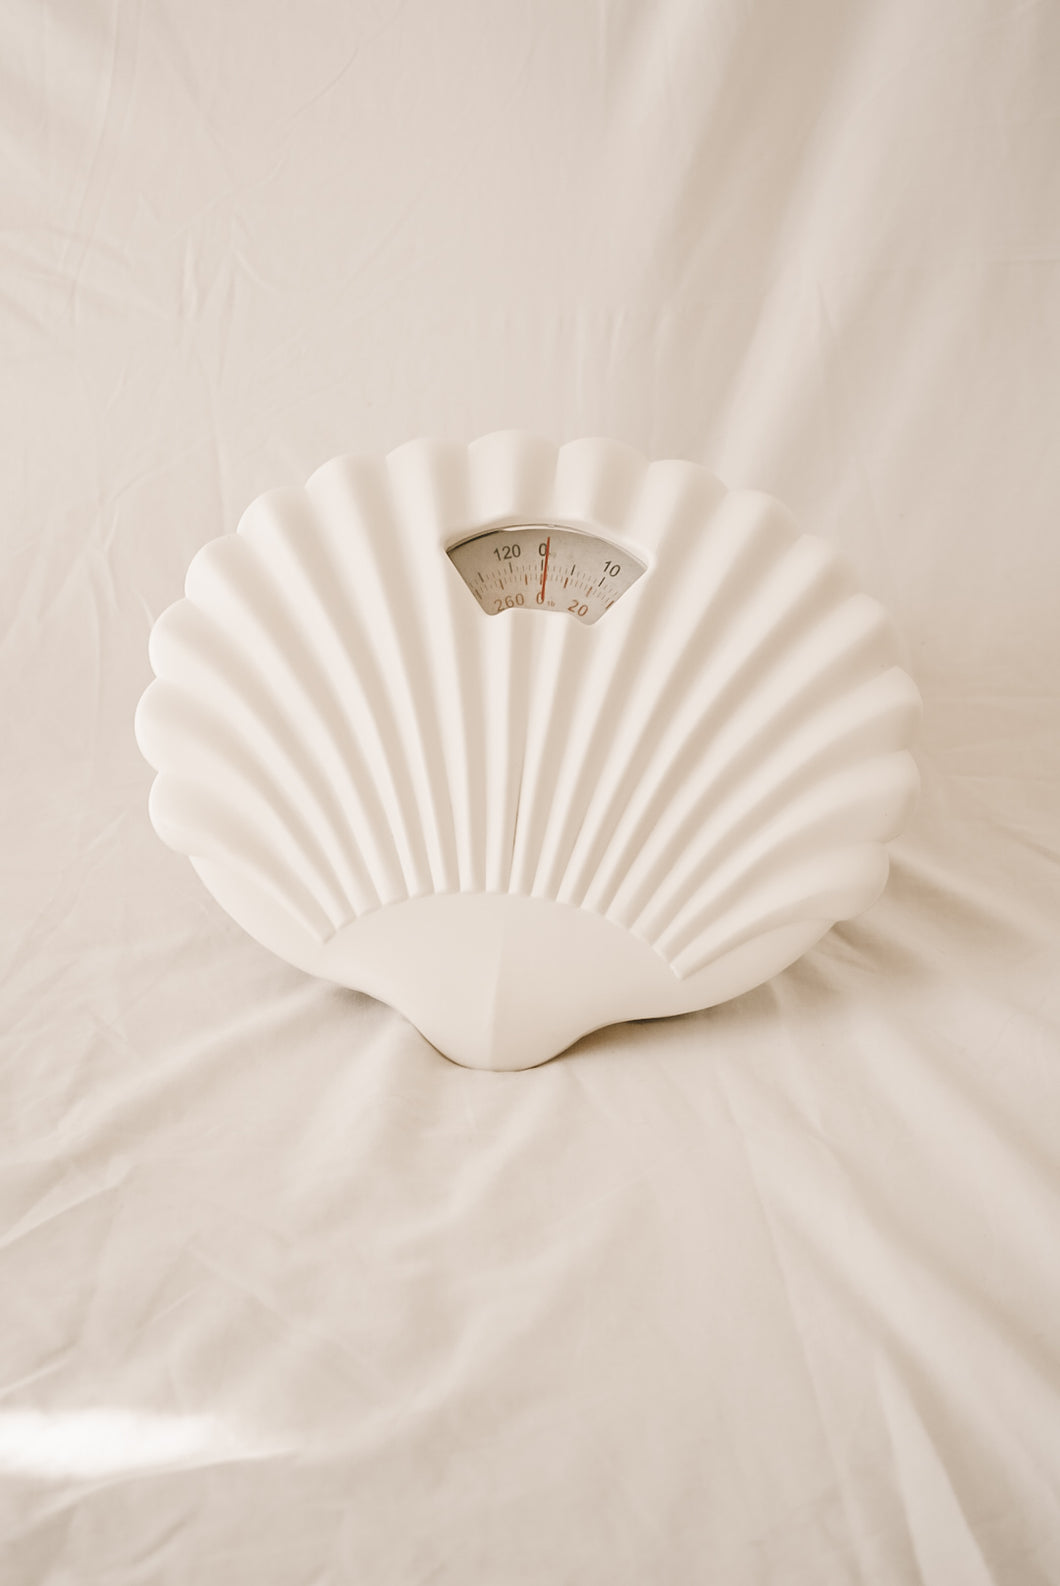 scallop shell scales